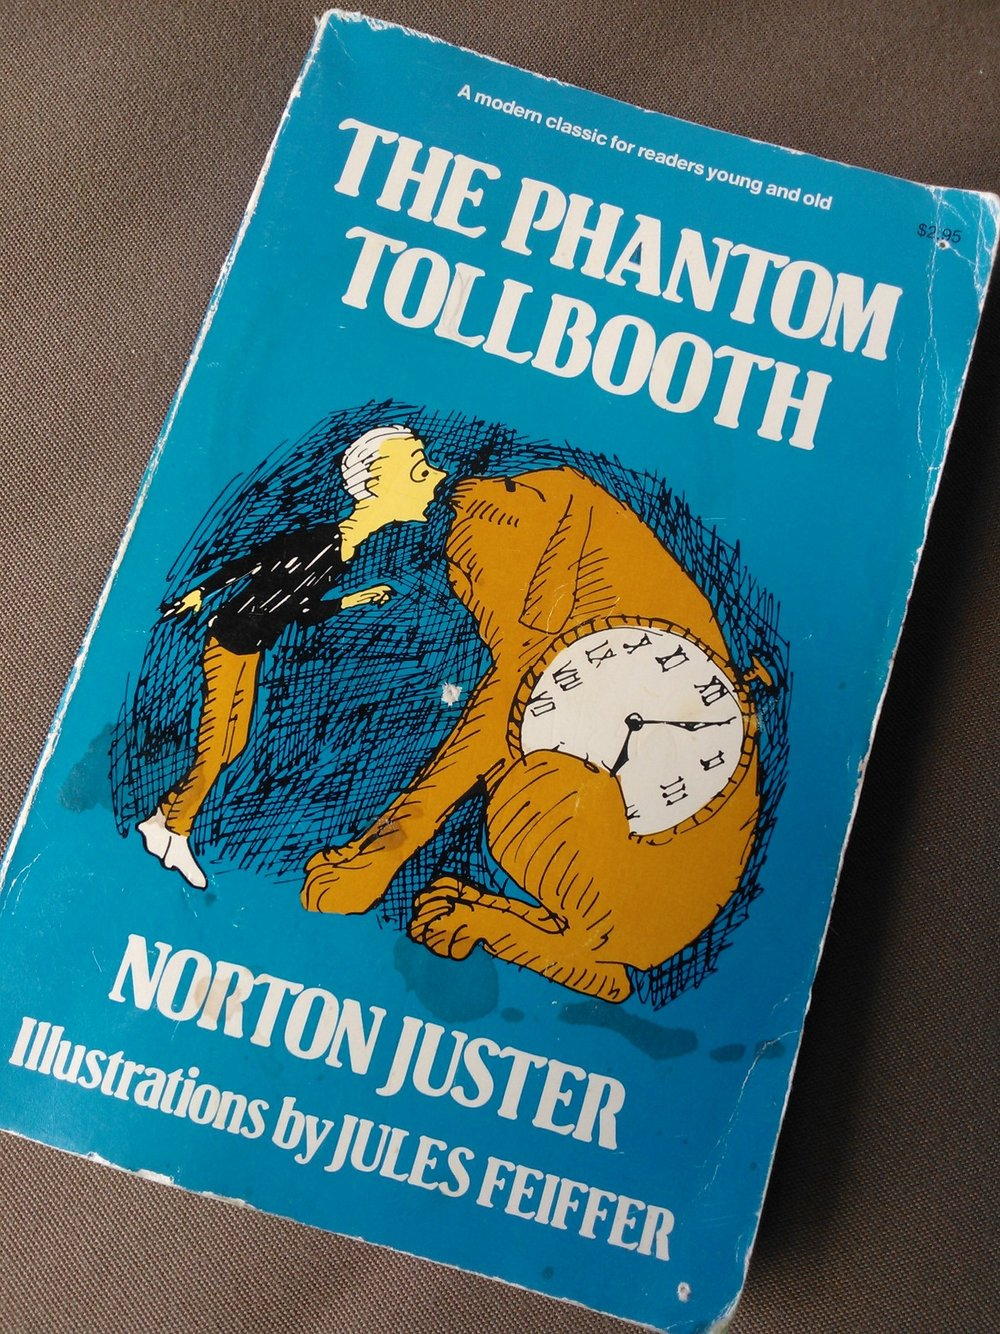 My original childhood copy of Juster's The Phantom Tollbooth.